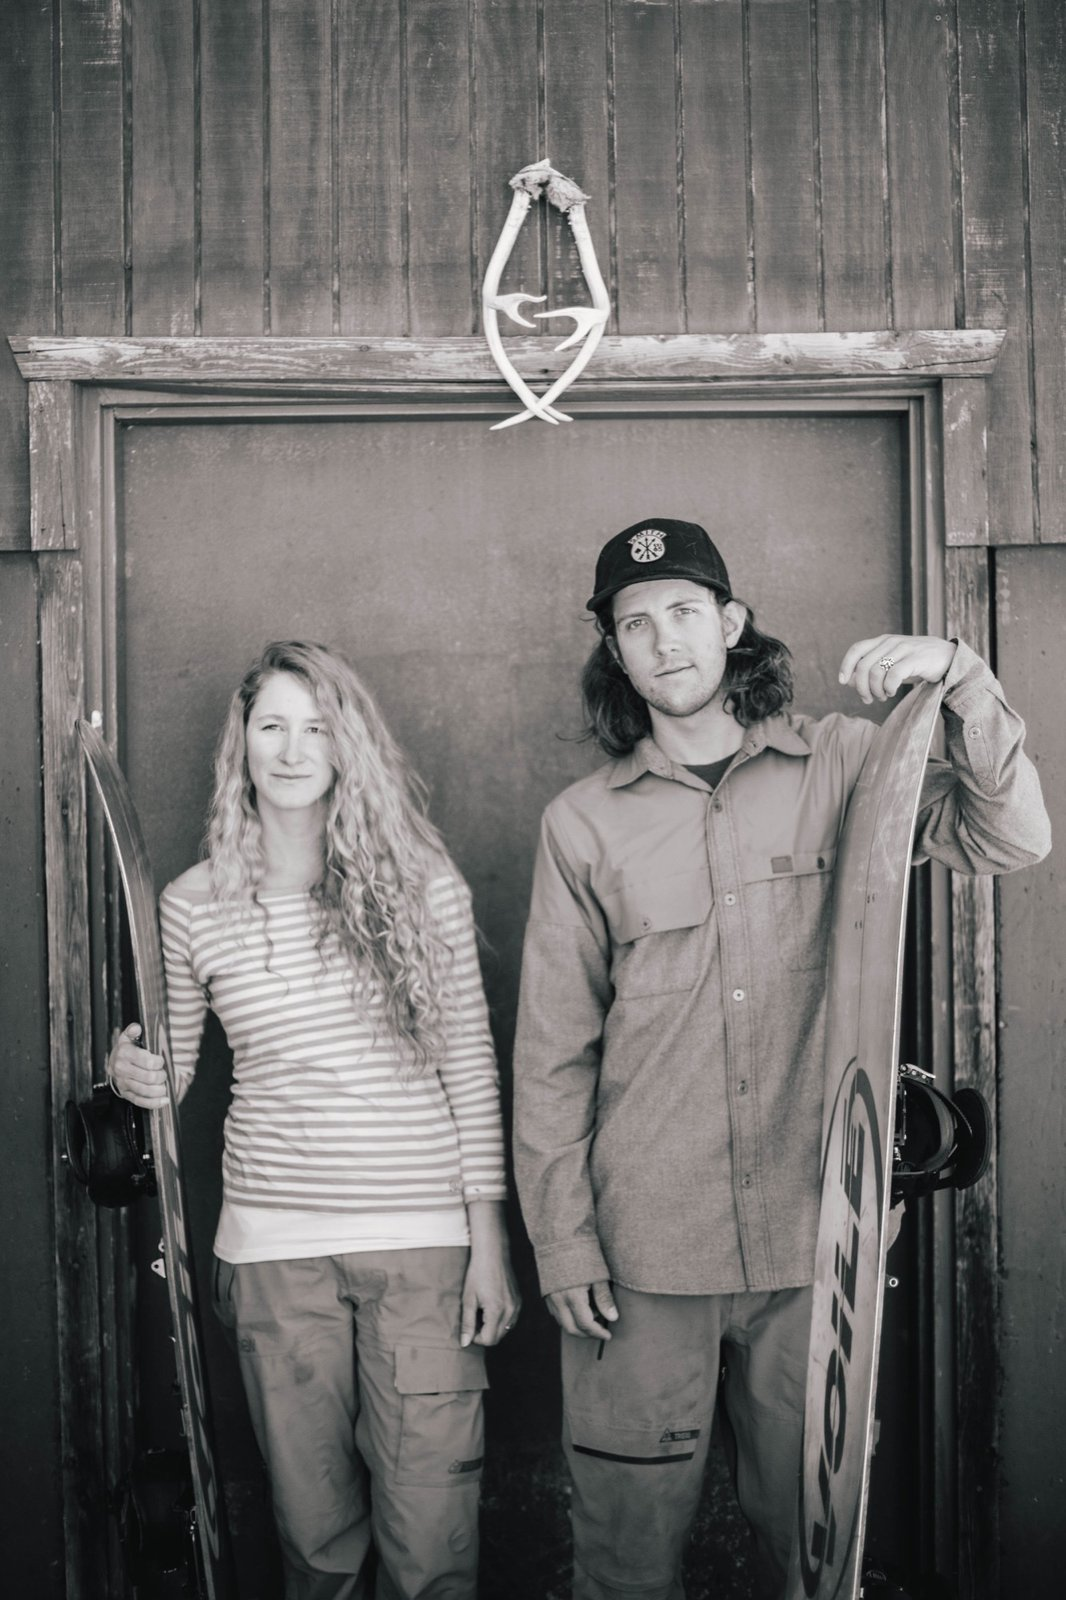 Zach and Cindi Lou Grant‒extreme athletes, high-school sweethearts, and DIY cabin builders  Photo 3 of 10 in Backcountry Haven